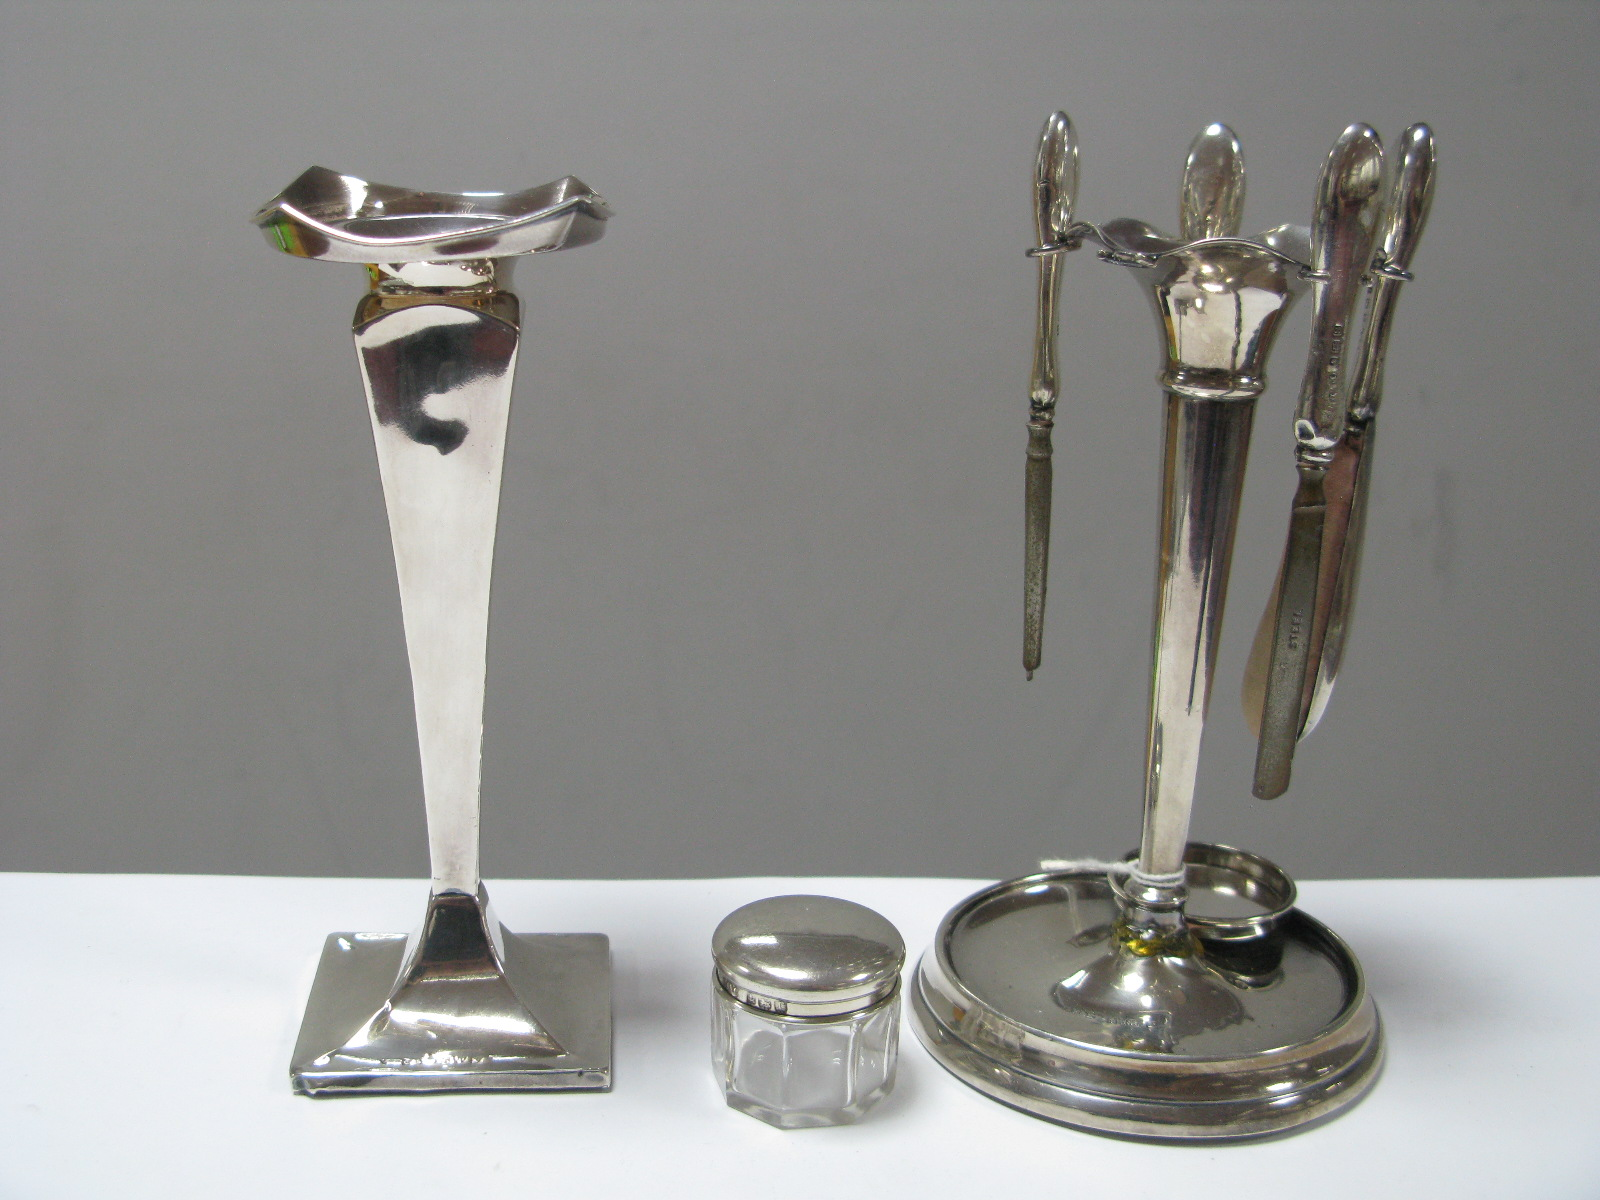 Lot 299 - A Hallmarked Silver Manicure Stand, together with a hallmarked silver vase, of tapering square form.